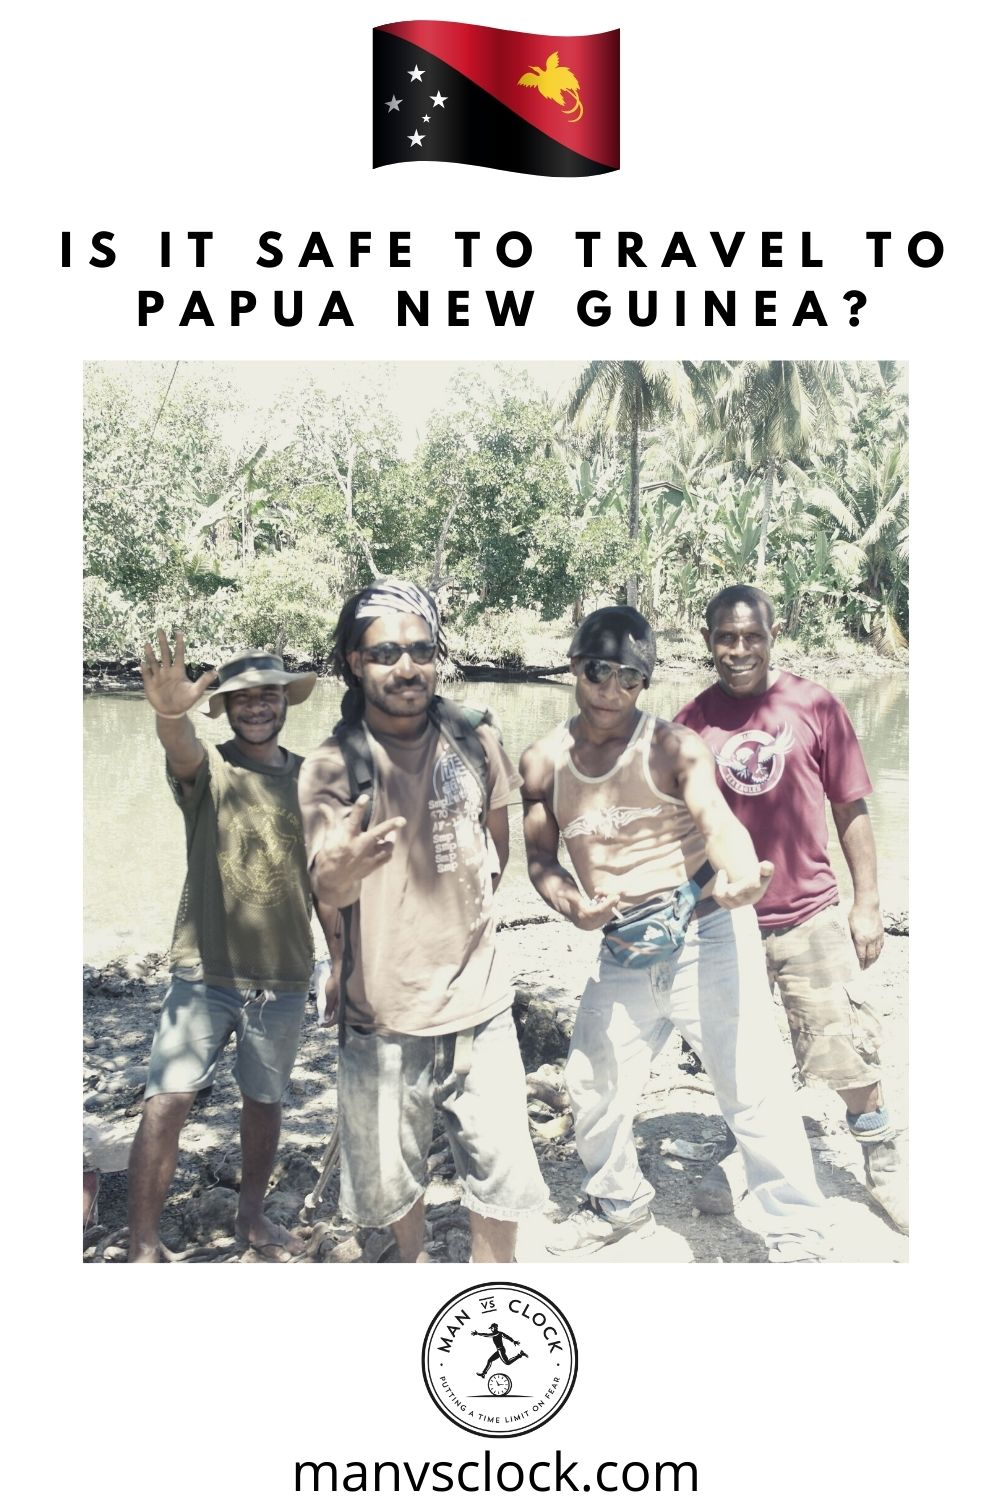 4 men pose for the camera in papua new guinea